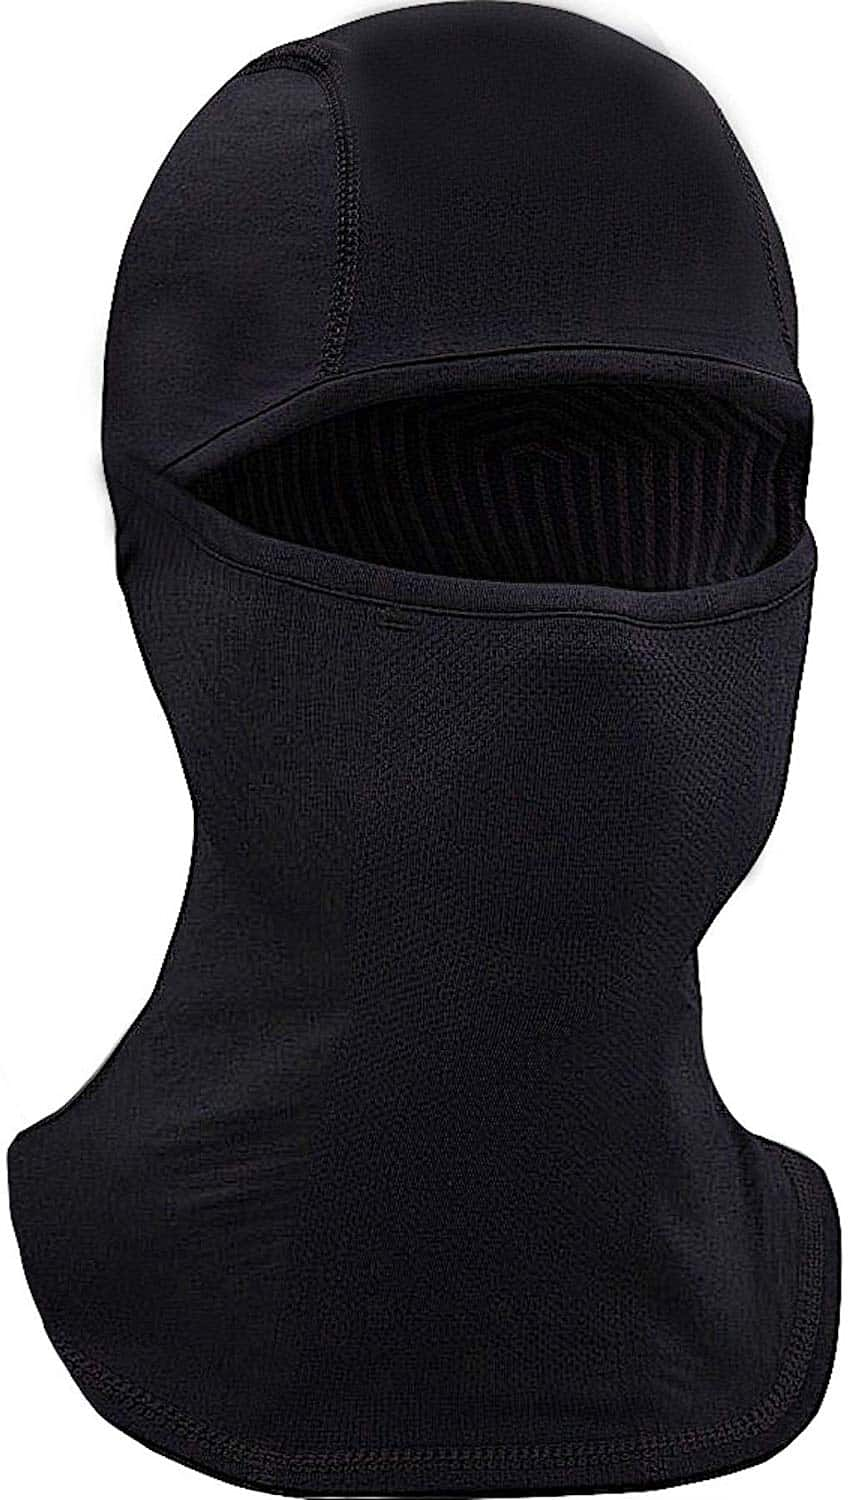 Self Pro Balaclava-Windproof Ski Mask